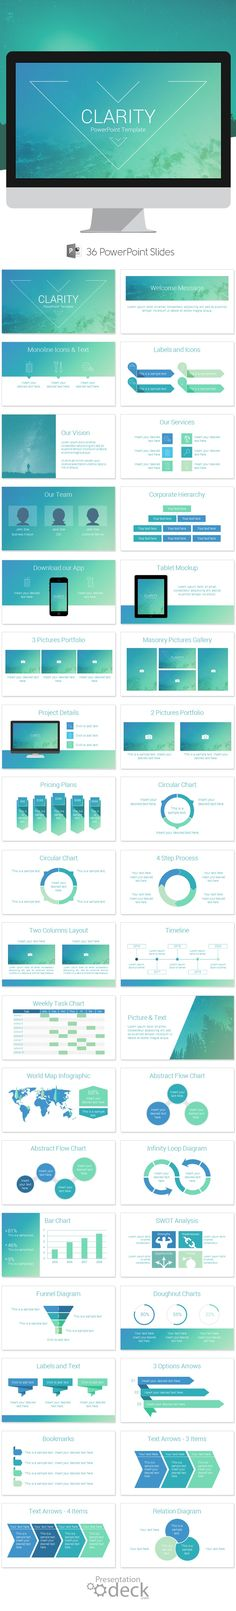 Clarity is an awesome PowerPoint presentation template that includes 36… Presentation Slides Design, Pitch Presentation, Marketing Presentation, Business Presentation, Powerpoint Presentation Templates, Presentation Styles, Powerpoint Themes, Ppt Template, Powerpoint Presentations